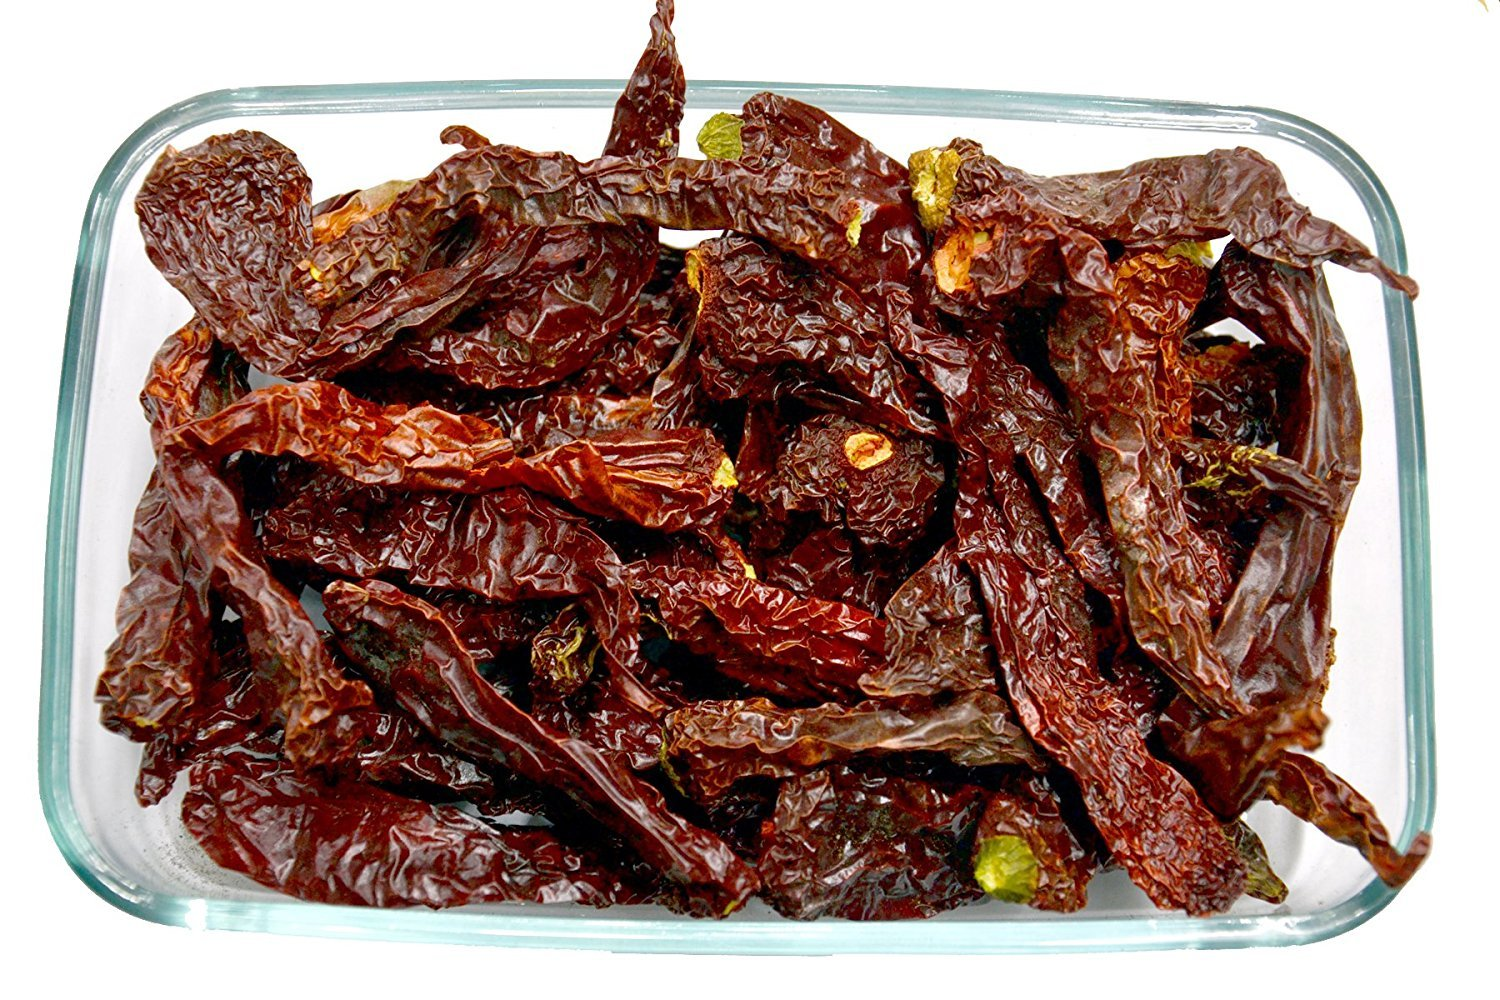 Whole Sun Dried KASHMIRI MIRCH Red Chillies Chili Peppers Spices 200g by Leeve Dry Fruits (Image #1)